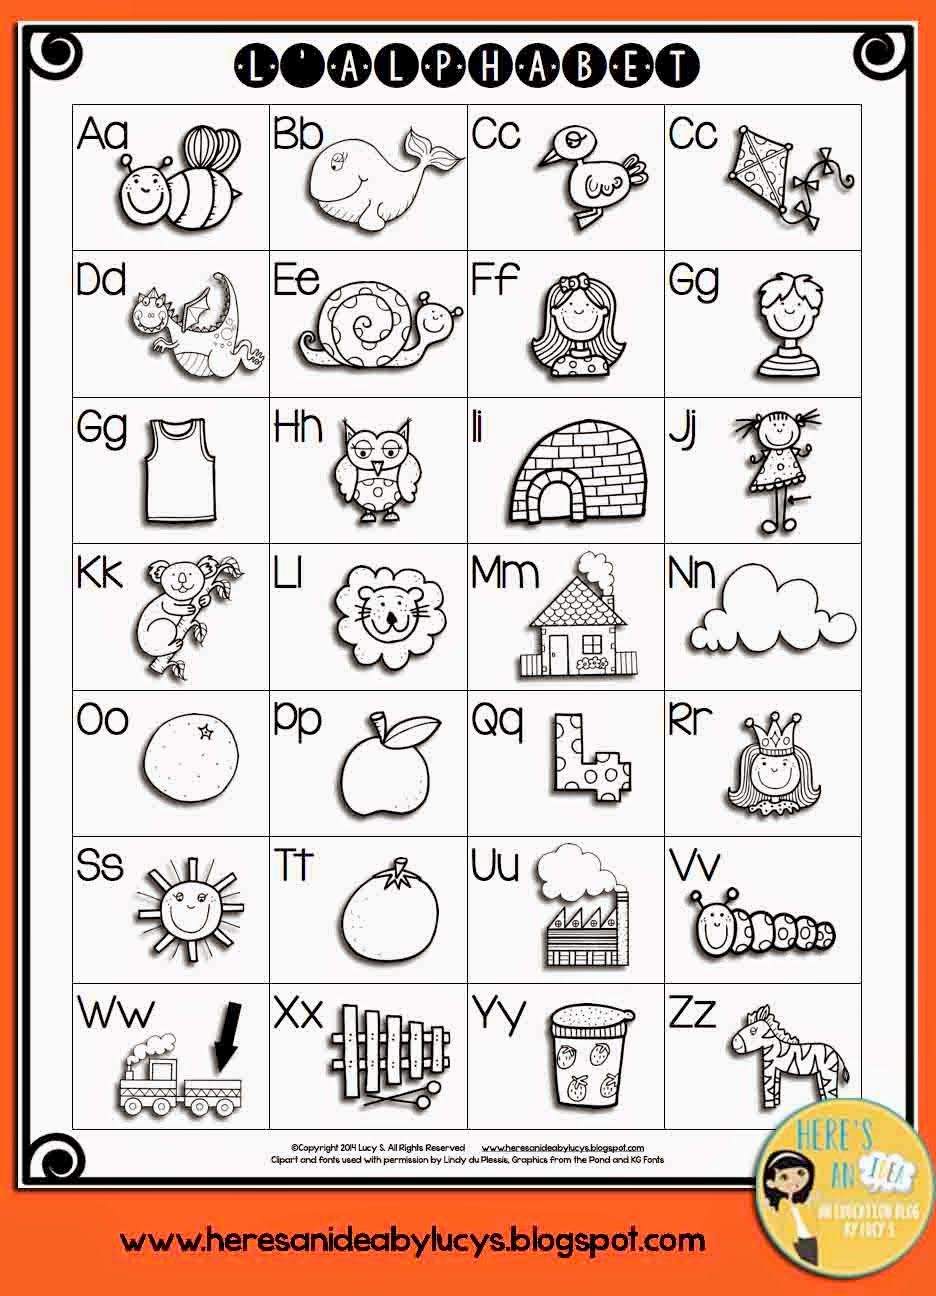 Free French Worksheet Grade 1 Grade 2 Grade 3 Fsl Core French Vocabulary Free Math Worksheets Reading Worksheets Math Worksheets